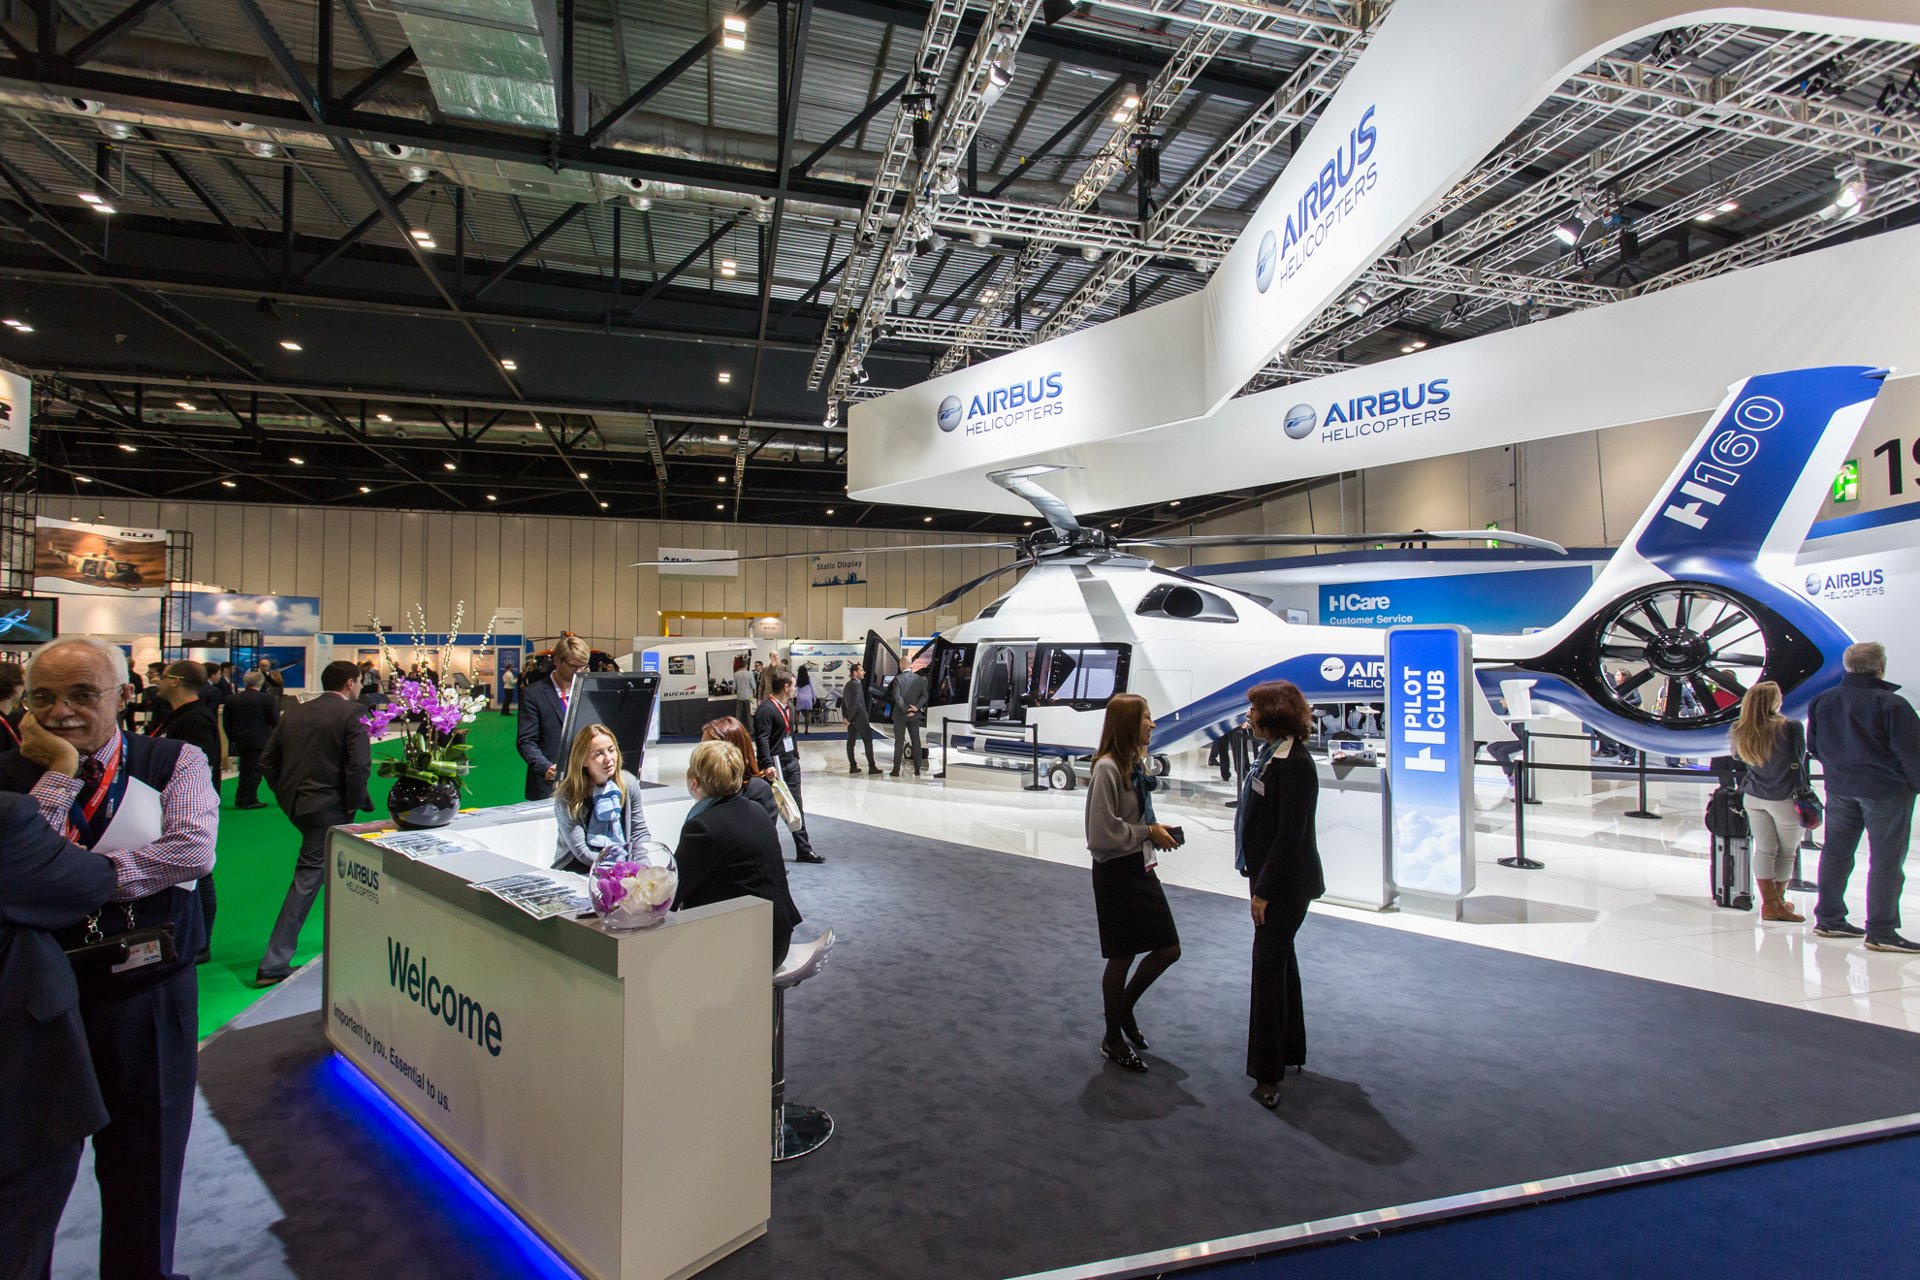 Airbus Helicopters signs important contracts and reaffirms commitment to customers at Helitech